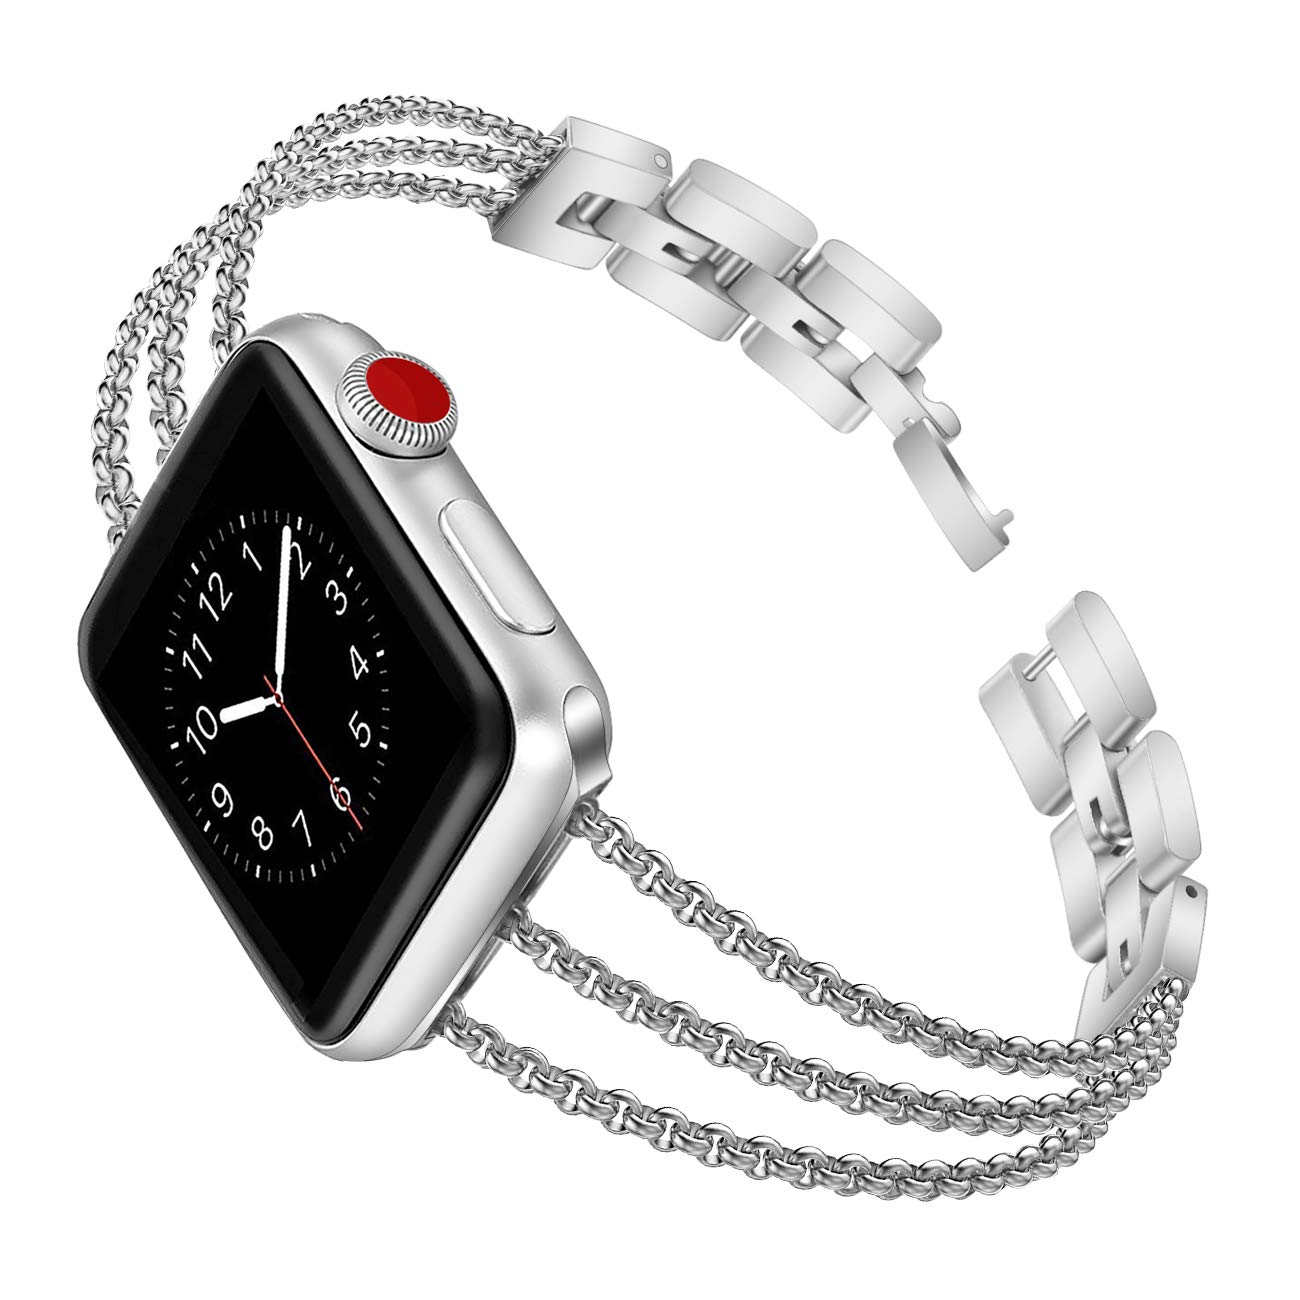 Biaoge Metal Band Compatible for Apple Watch Band Series 4 40mm 44mm/ iWatch Series 3 2 1 38mm 42mm, Adjustable Stainless Steel Replacement Wristband Strap Cuff Bangle Bracelet Accessori(Silver, 38mm) by Biaoge